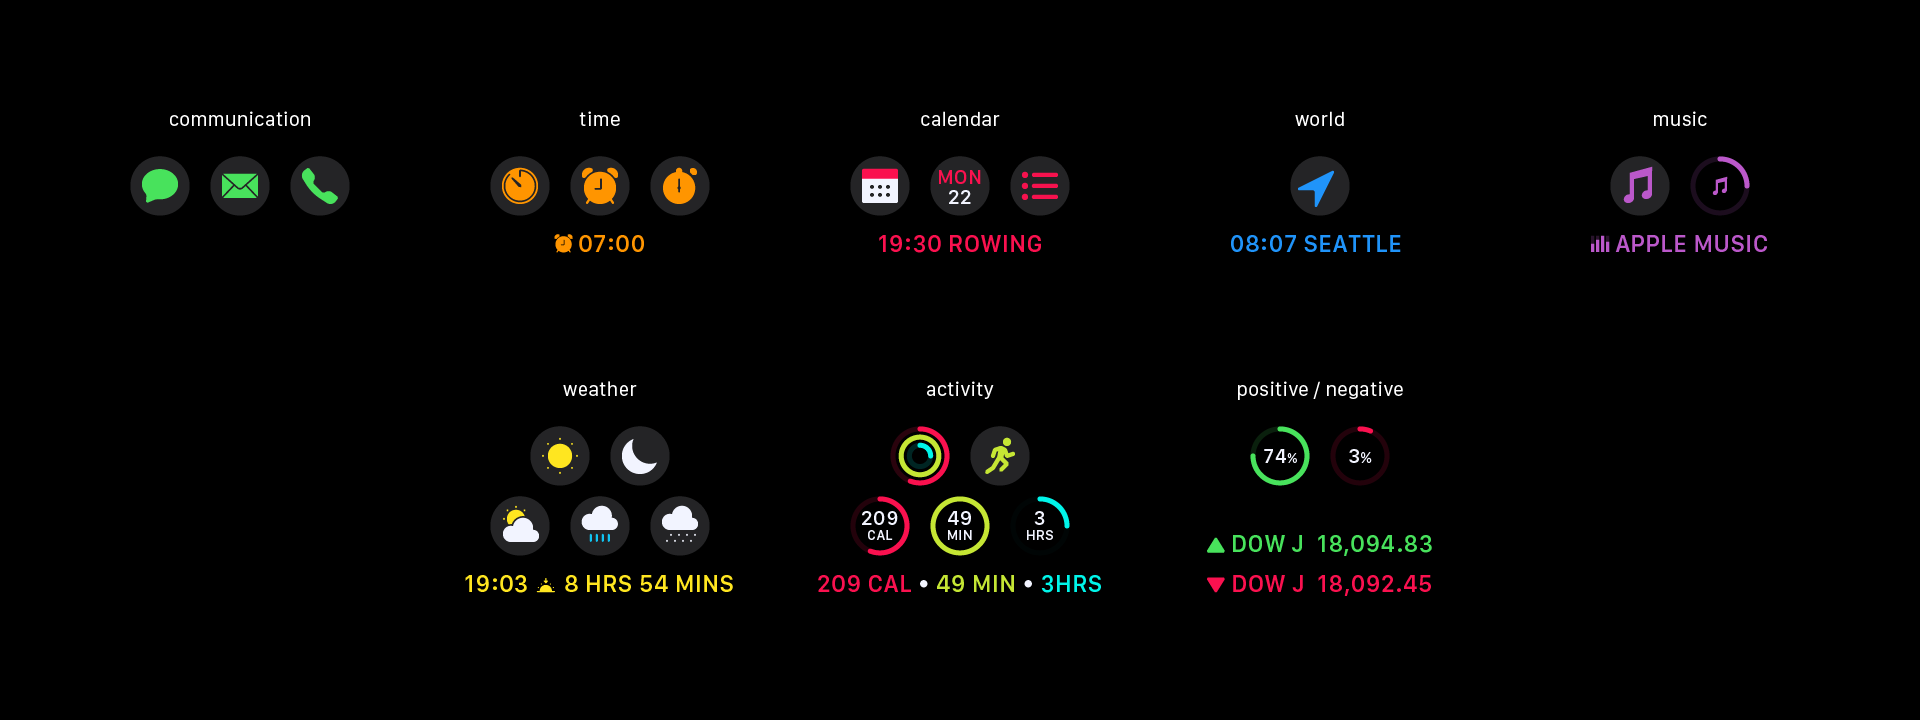 WatchOS complication colors